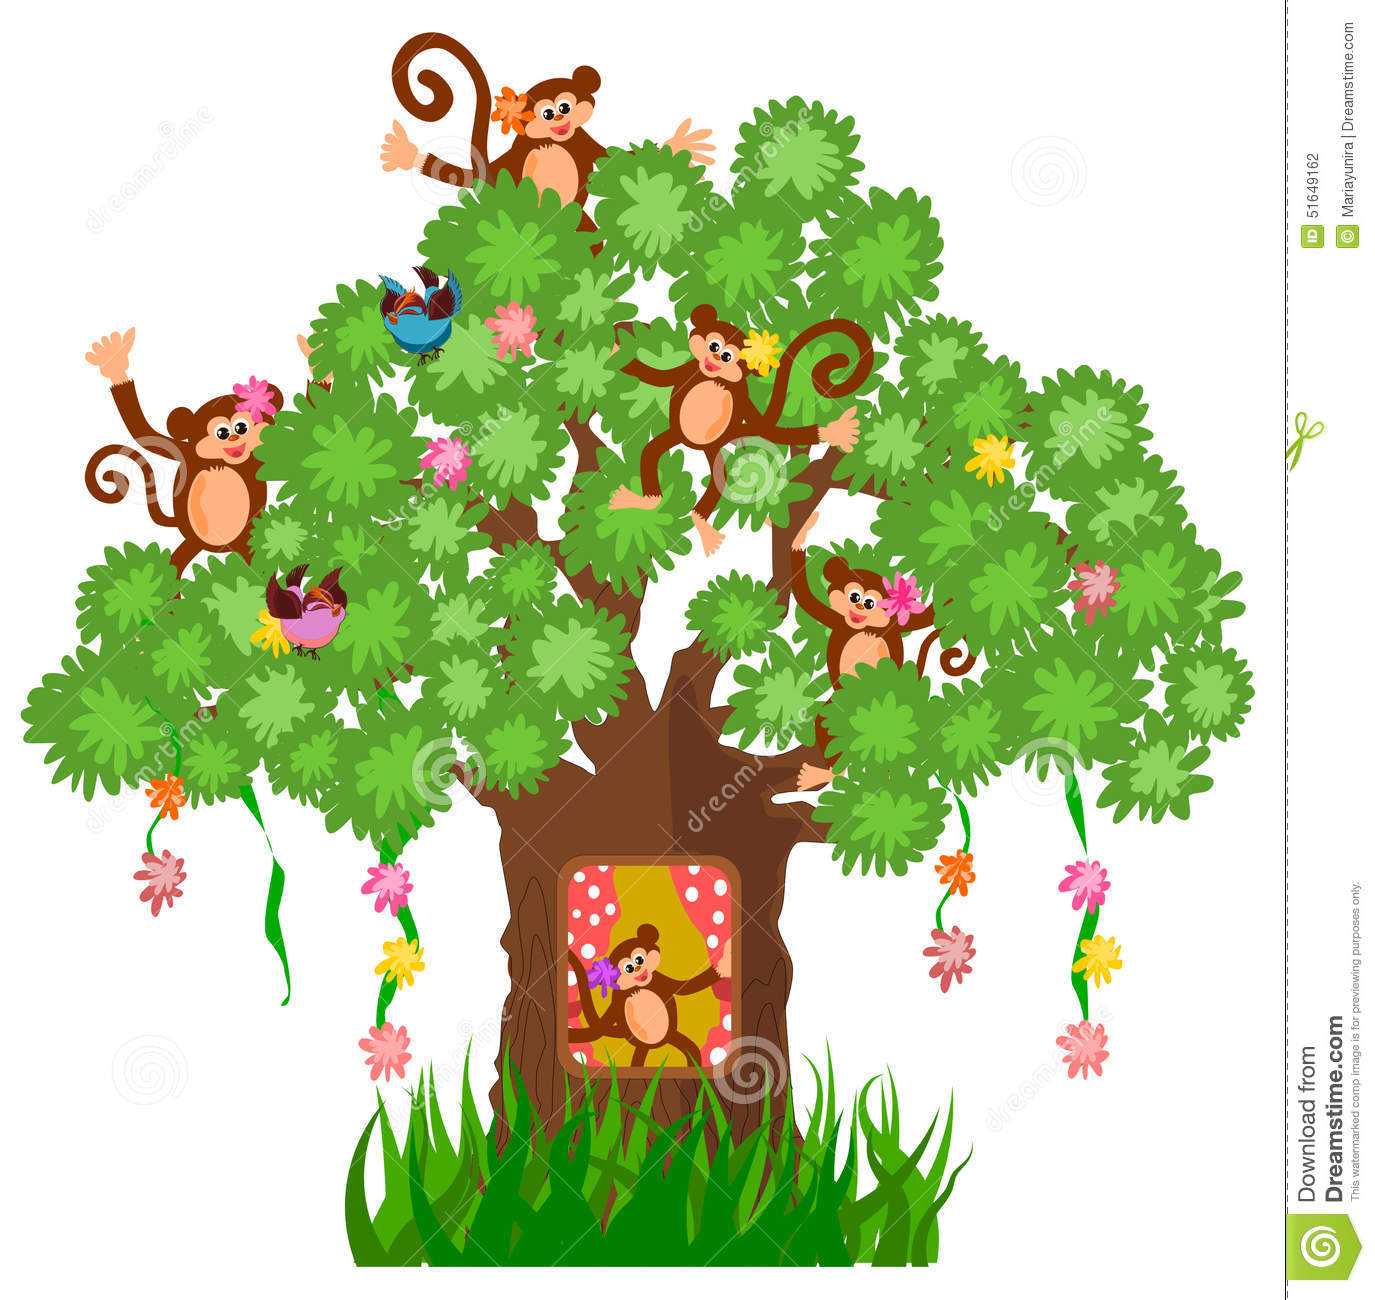 Printable Tree House Plans: Tree House And Monkey Stock Vector. Illustration Of